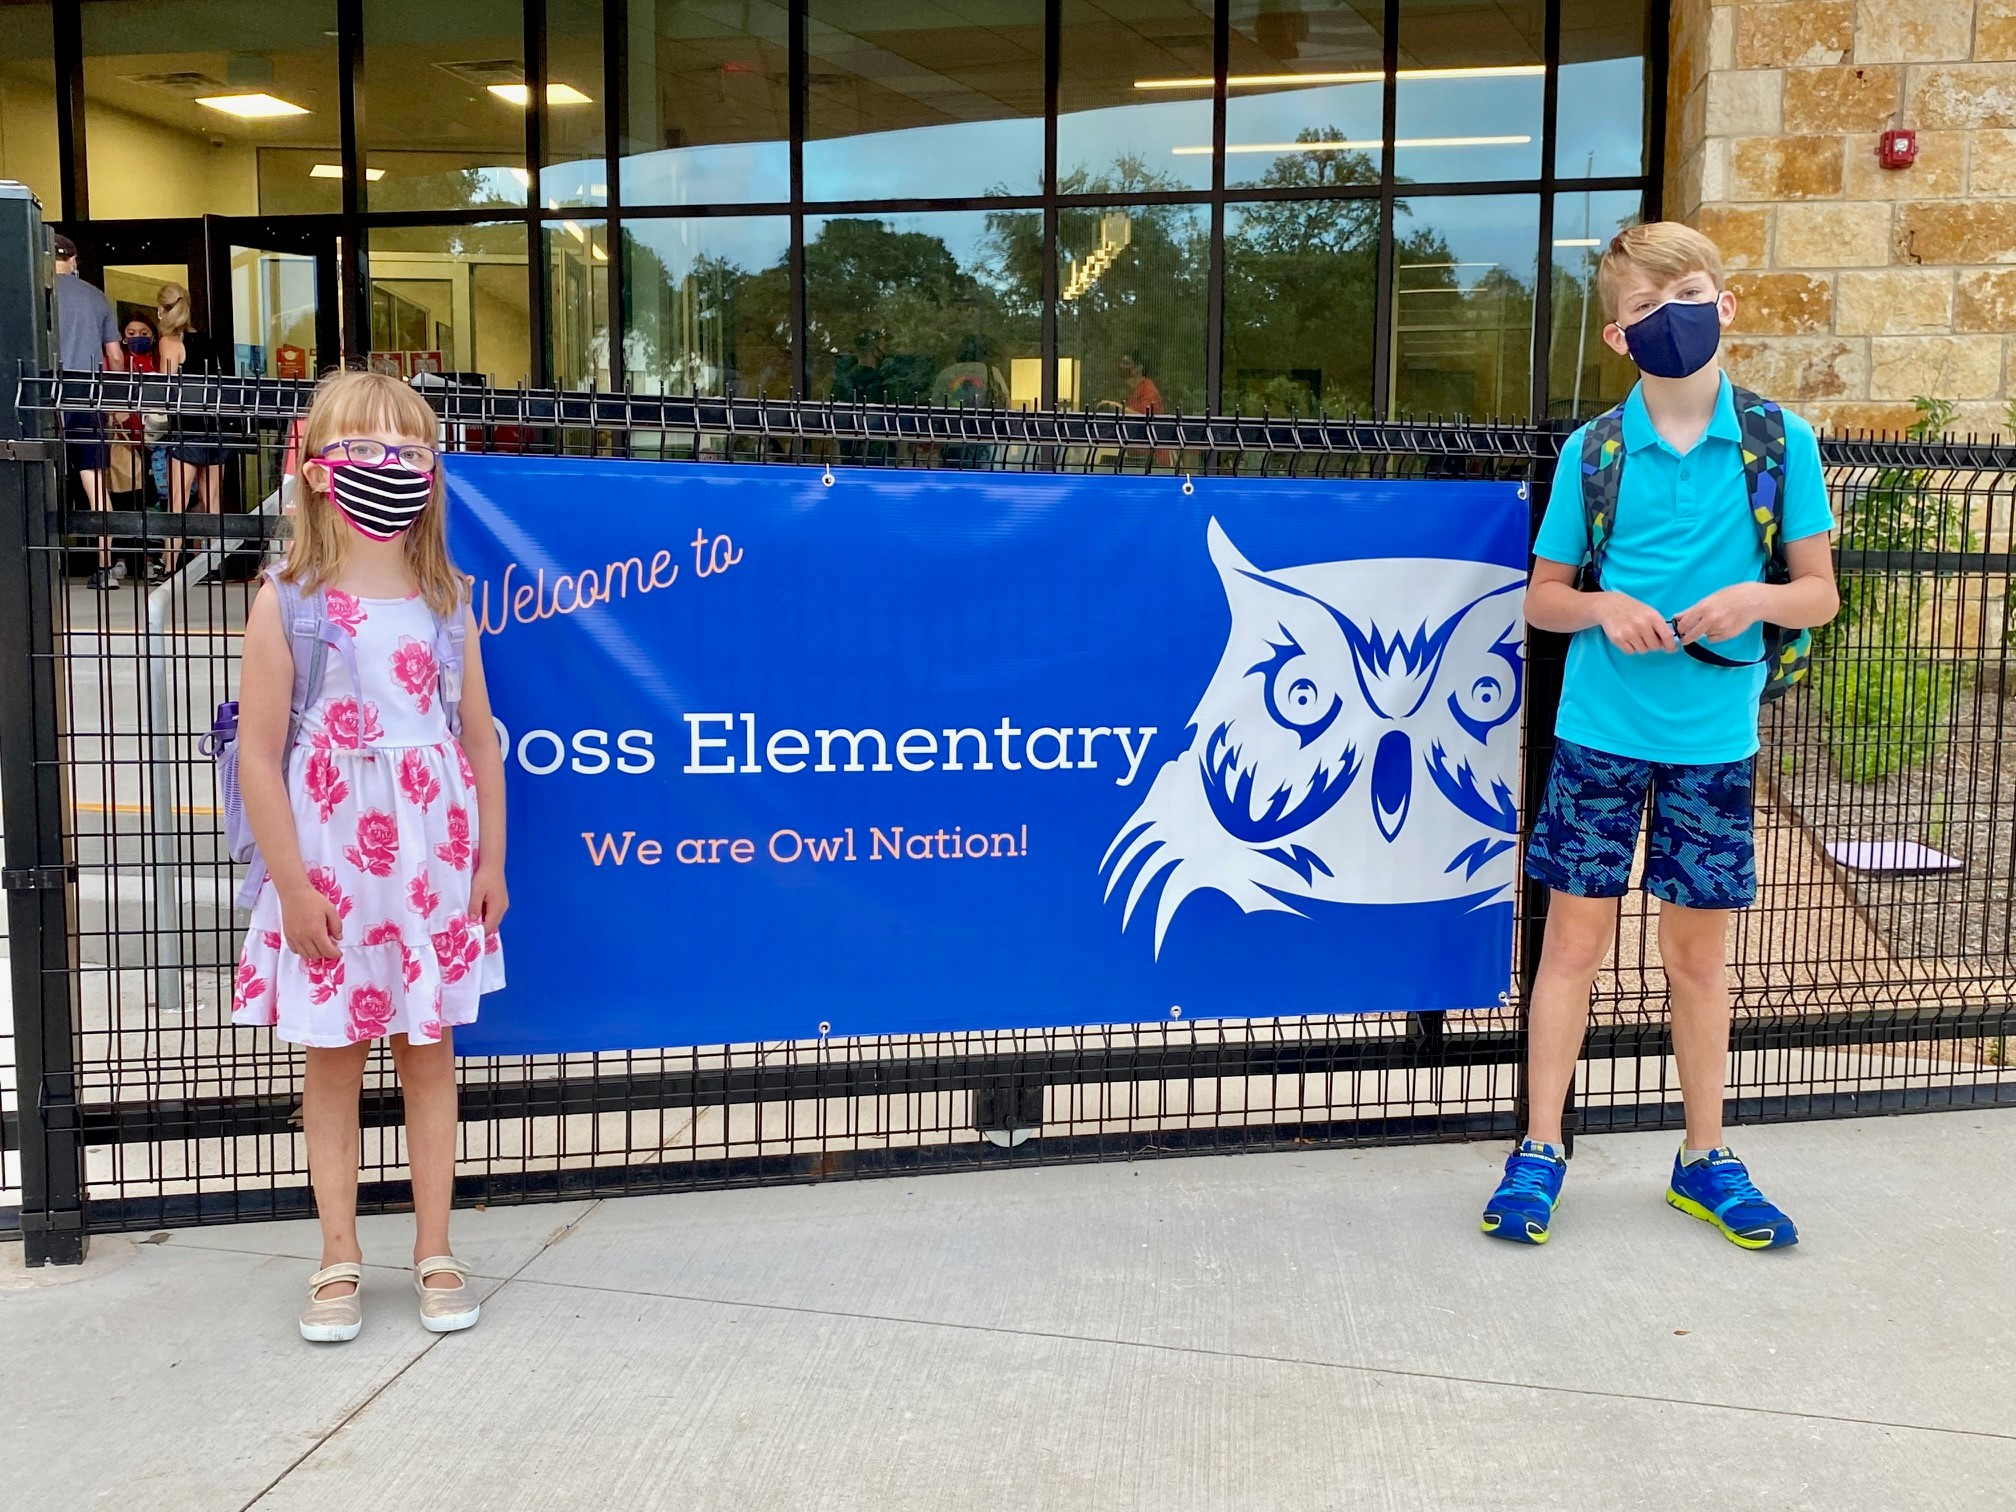 Back to school at Doss Elementary in Austin ISD